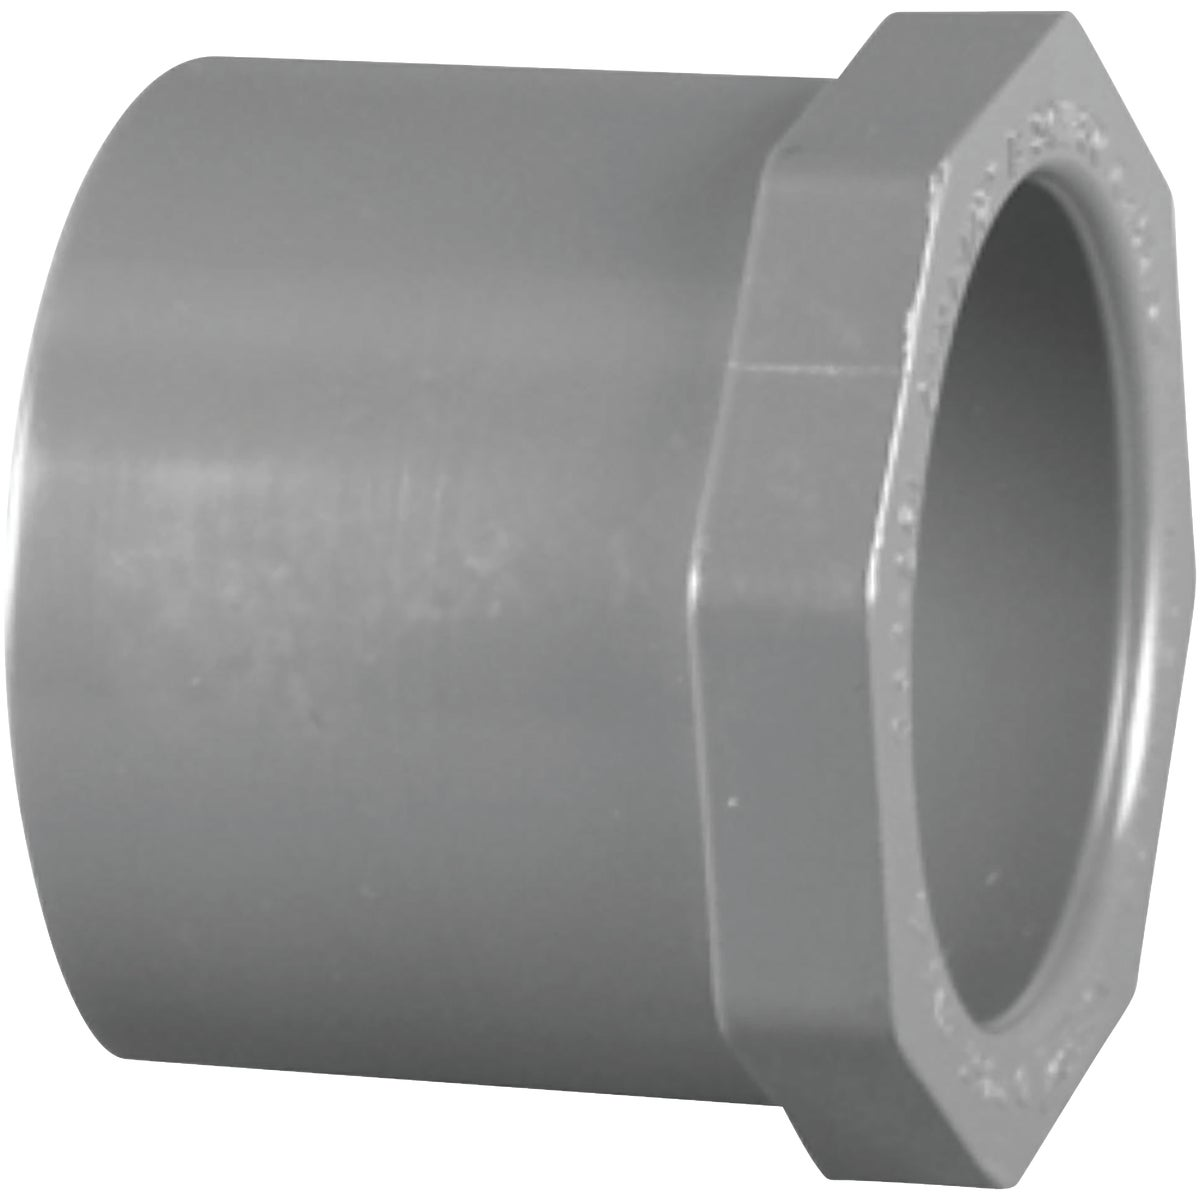 2X1-1/2 SPXS PVC BUSHING - 302218 by Genova Inc